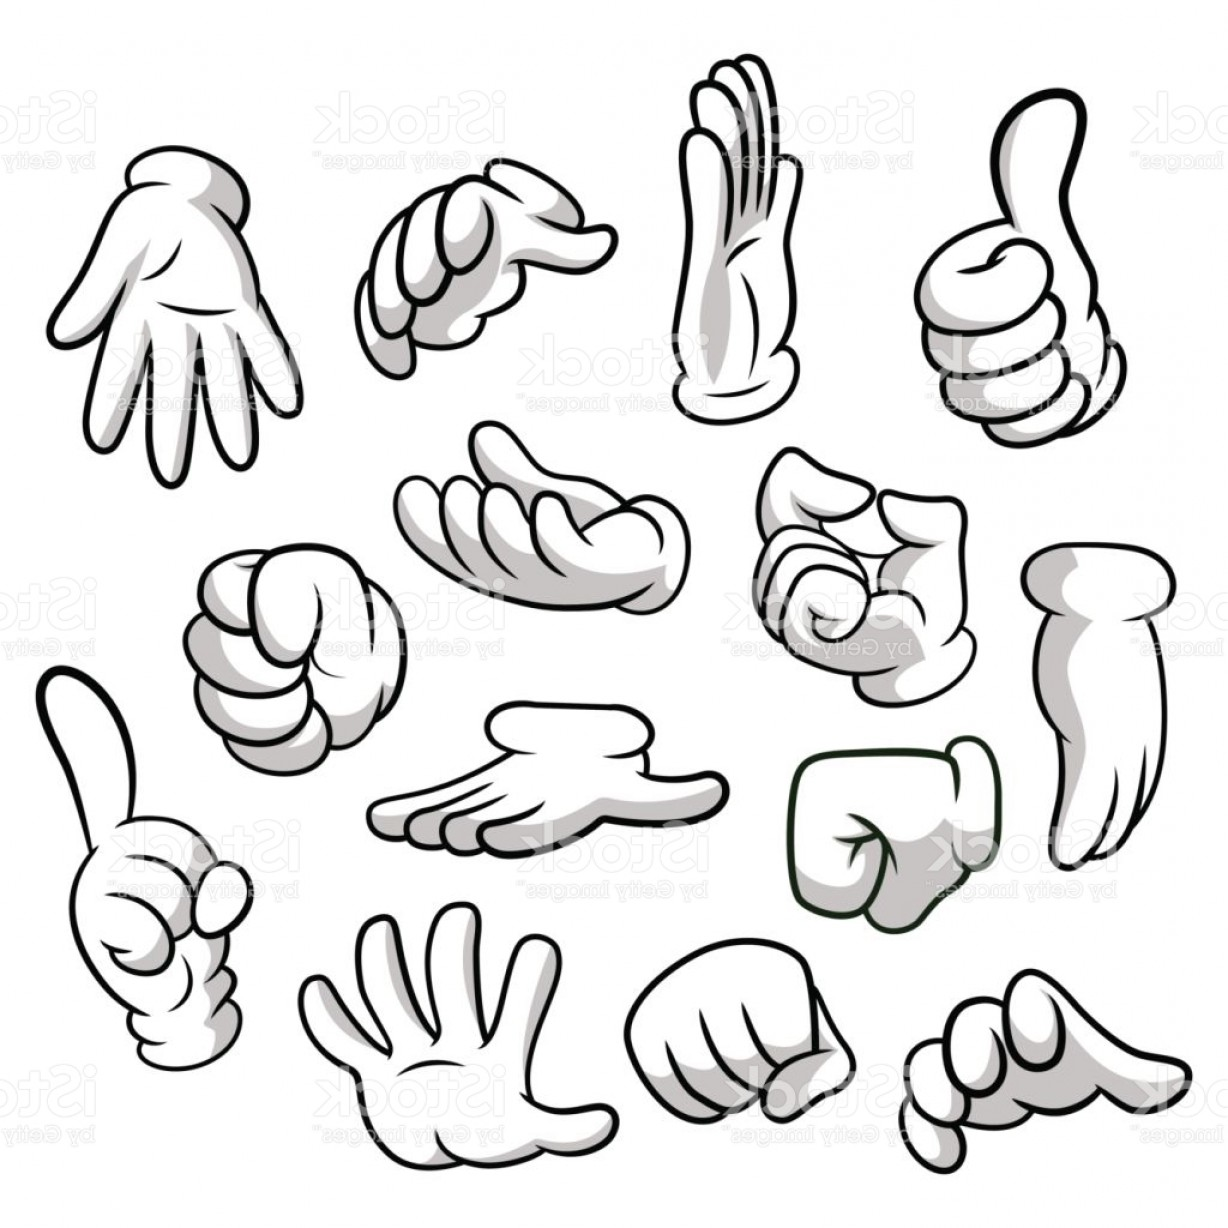 Cartoon hands clipart clip library library Cartoon Hands With Gloves Icon Set Isolated On White Background ... clip library library